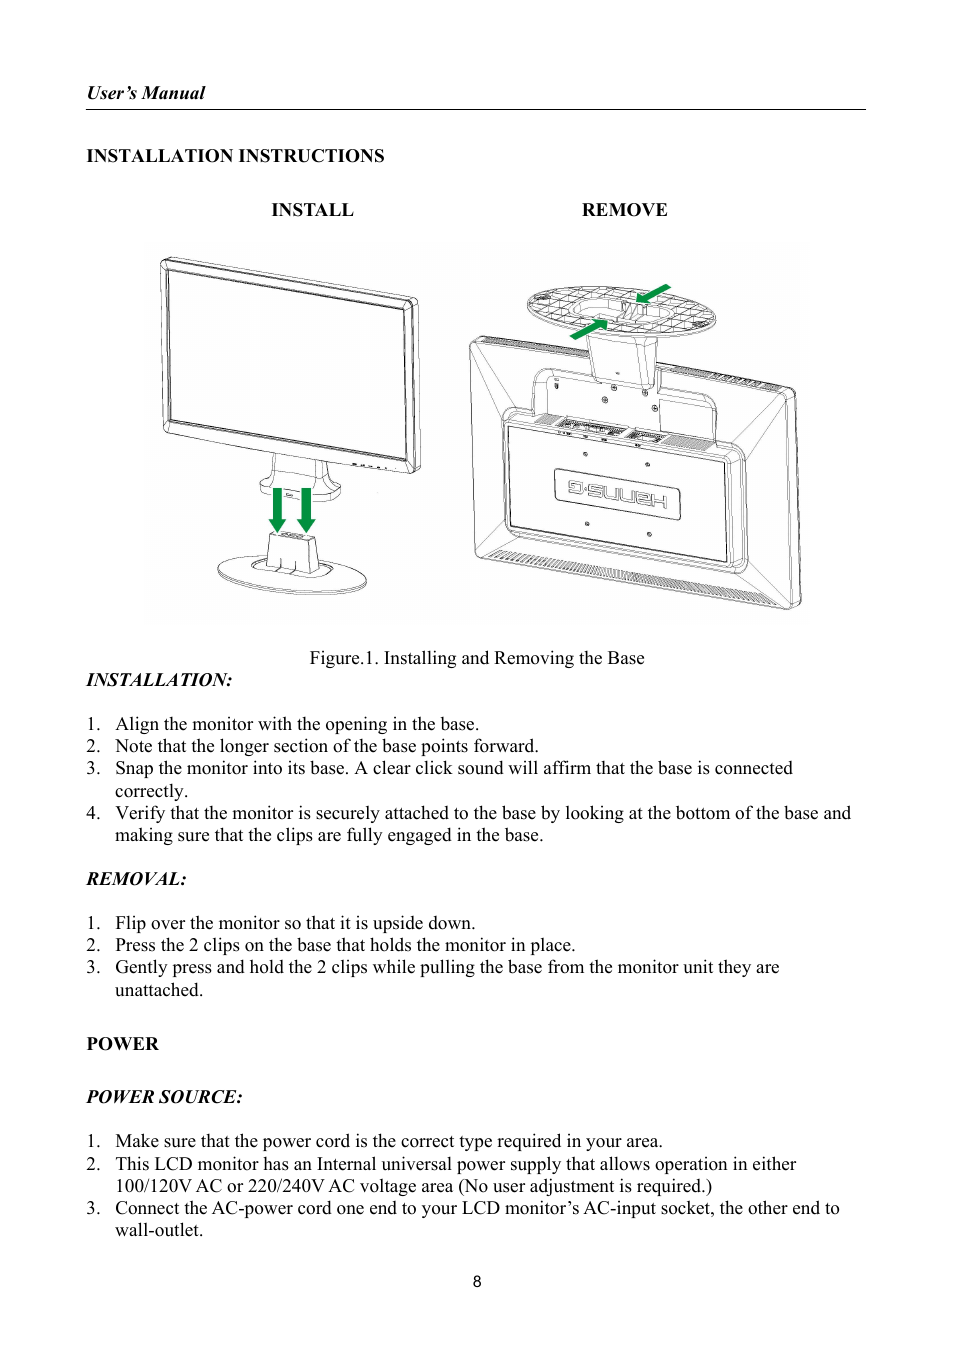 Installation Instructions Power Hannsg Hh221 User Manual Page 120v Ac Supply Wiring Diagram 8 23